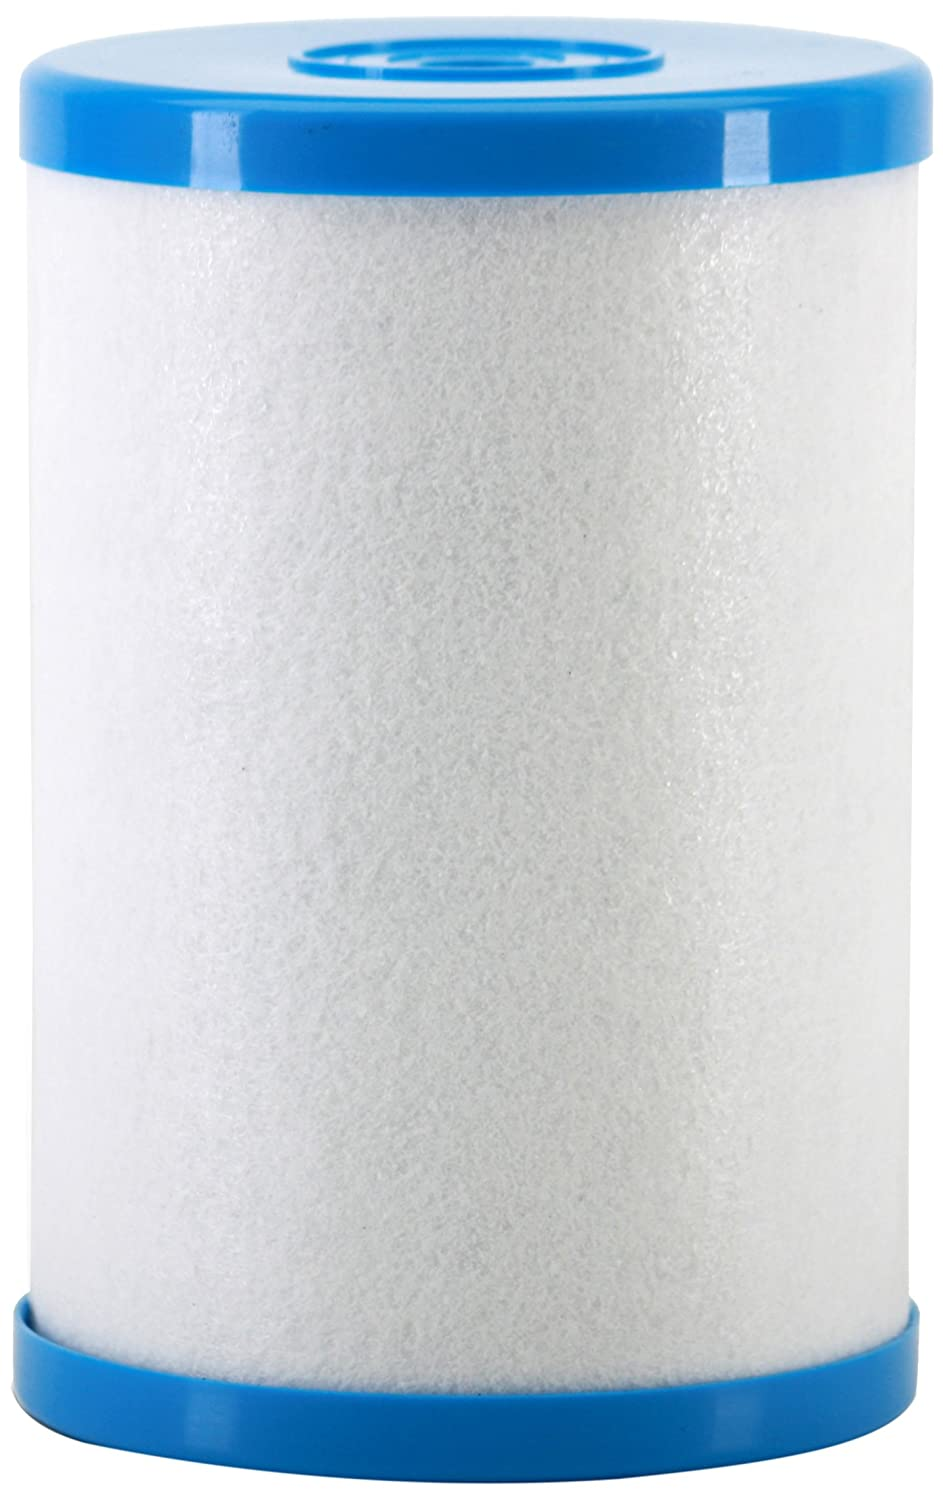 """Hydronix HG-CB6 Hydro Guard Carbon Block Water Filter for MP System, 0.5 μ, 4.5"""" Length, 6.5"""" Height, 4.5"""" D x 6.5"""" H"""